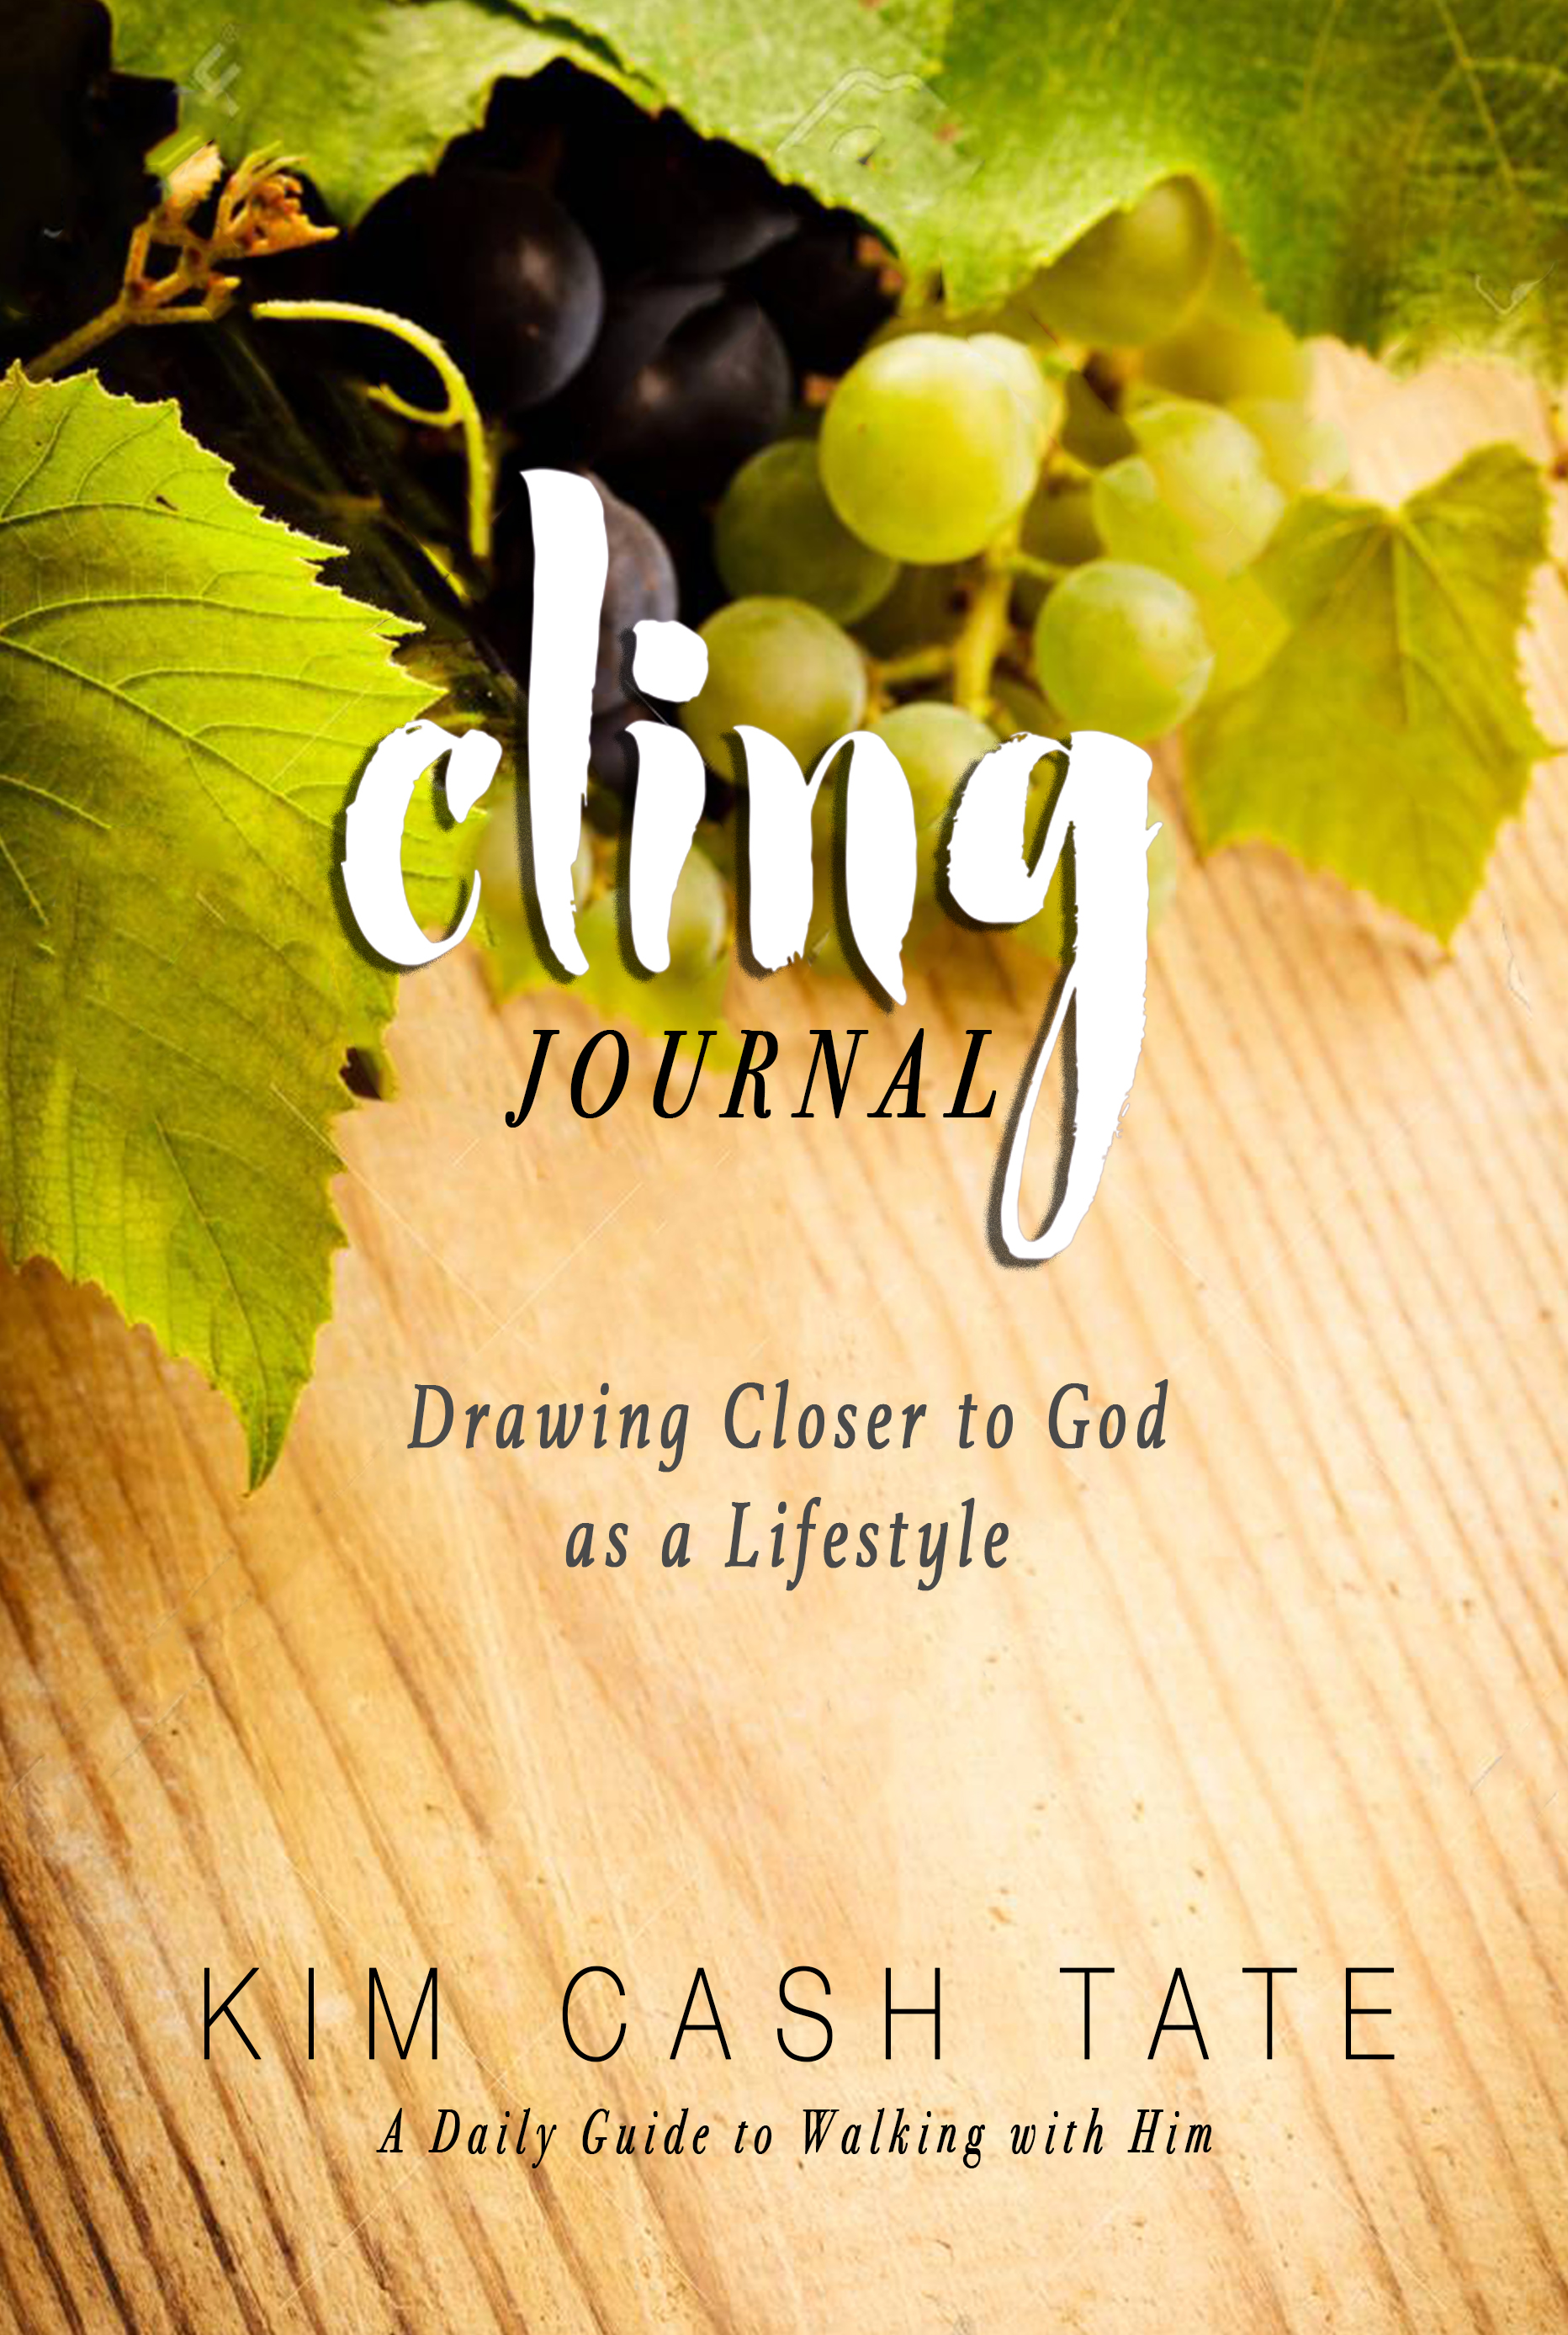 Cling Journal: Drawing Closer to God as a Lifestyle by Kim Cash Tate_Cover.jpg